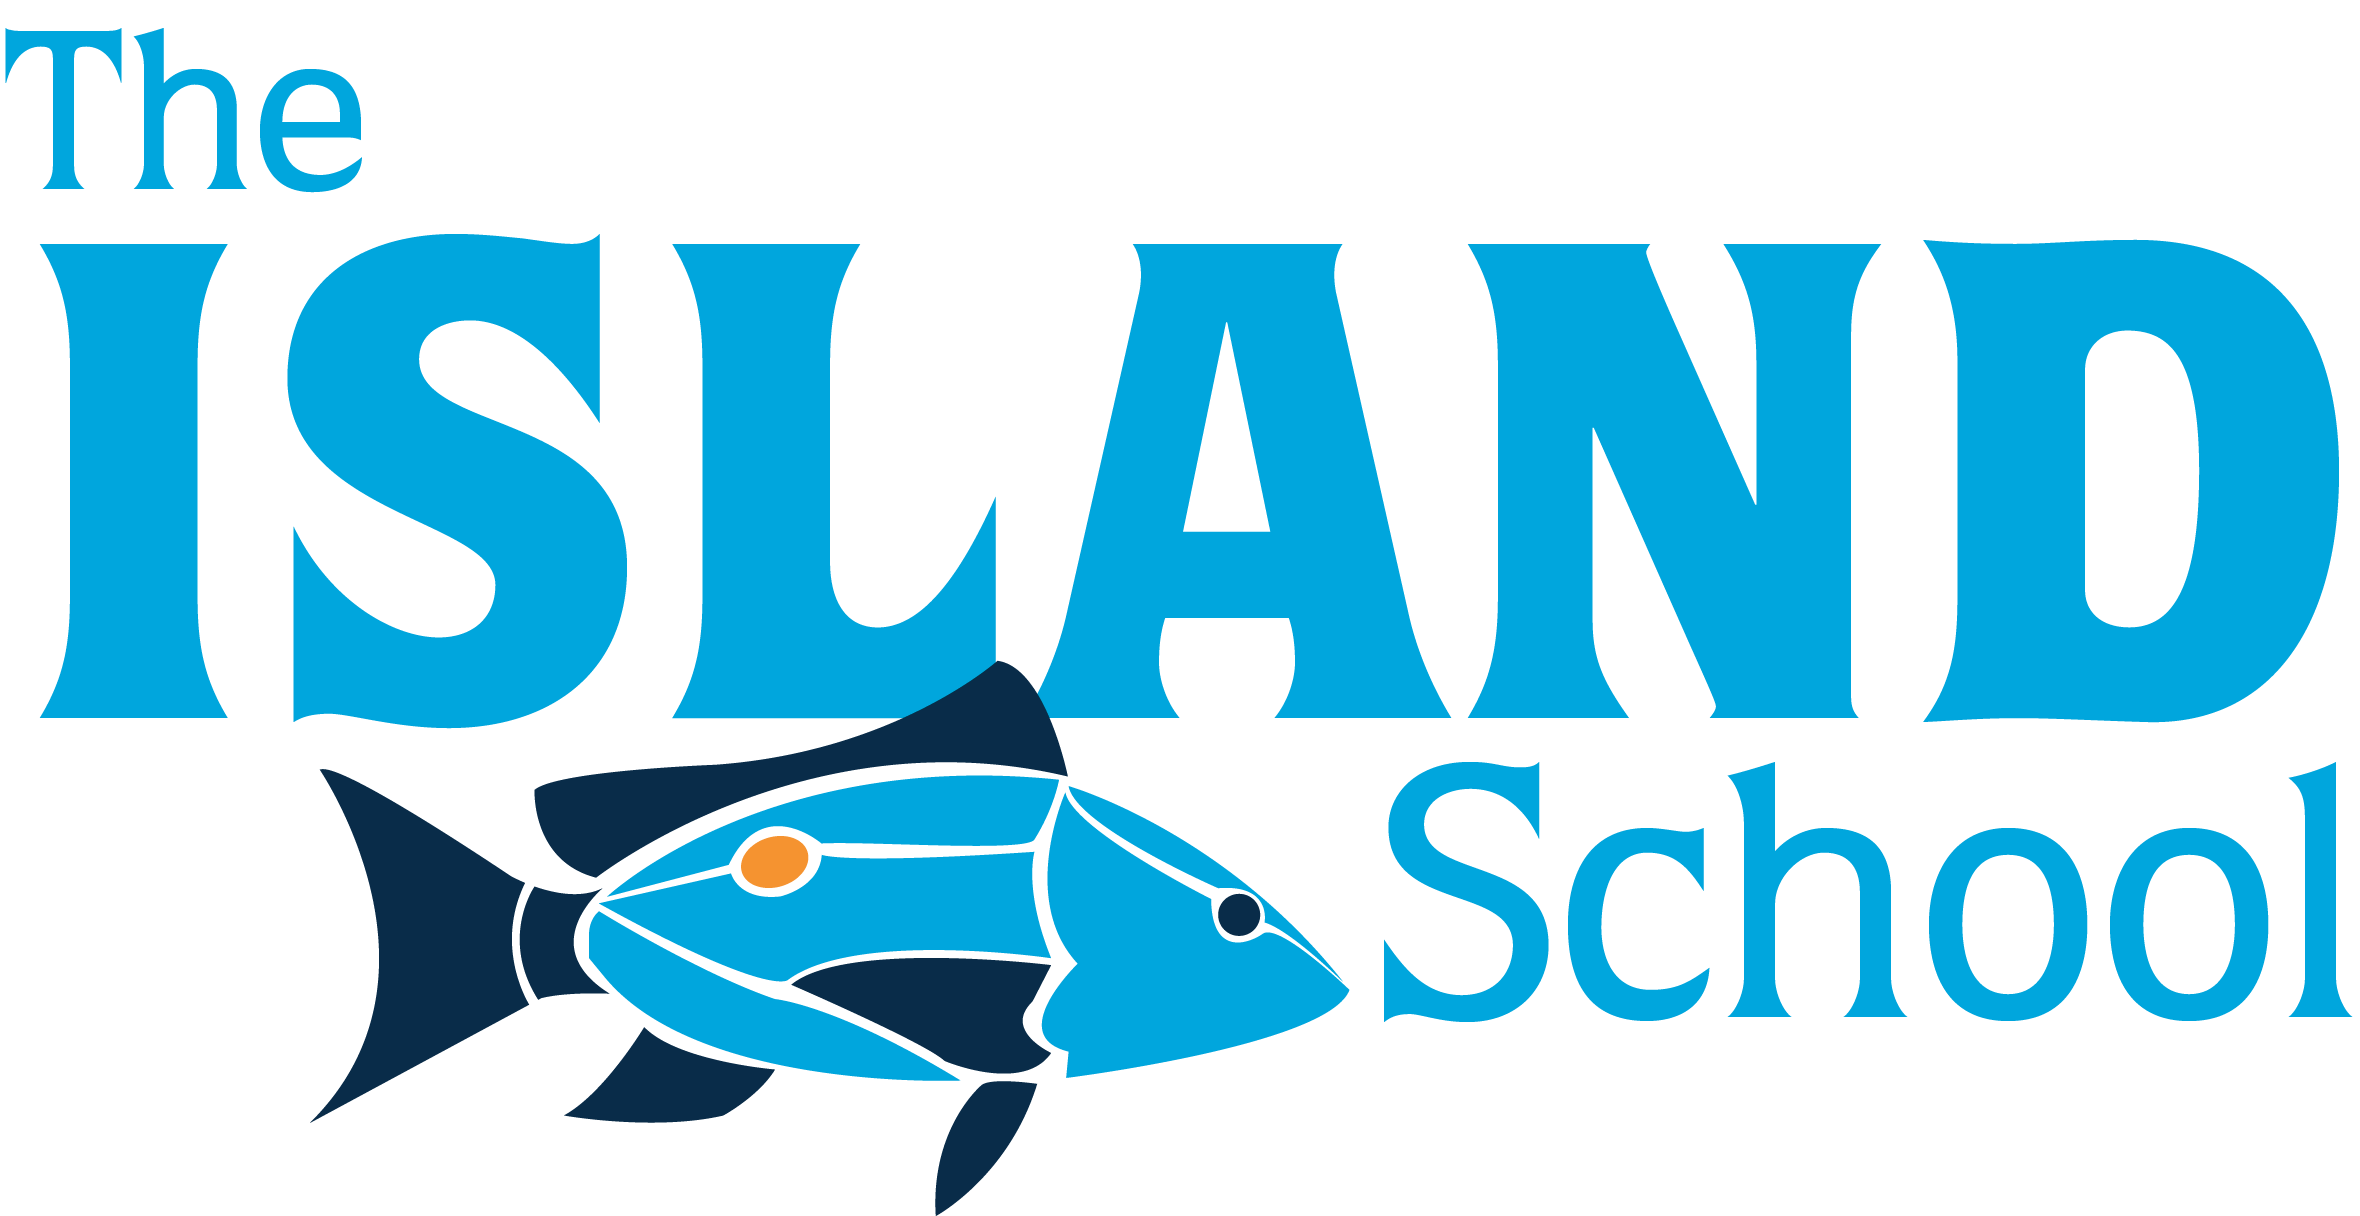 hurriance island outward bound school case Hurricane island outward bound school (hiobs) is partnering with the island school to launch an expeditionary sailing program to be operated out of the island school's campus in cape eleuthera, the bahamas.